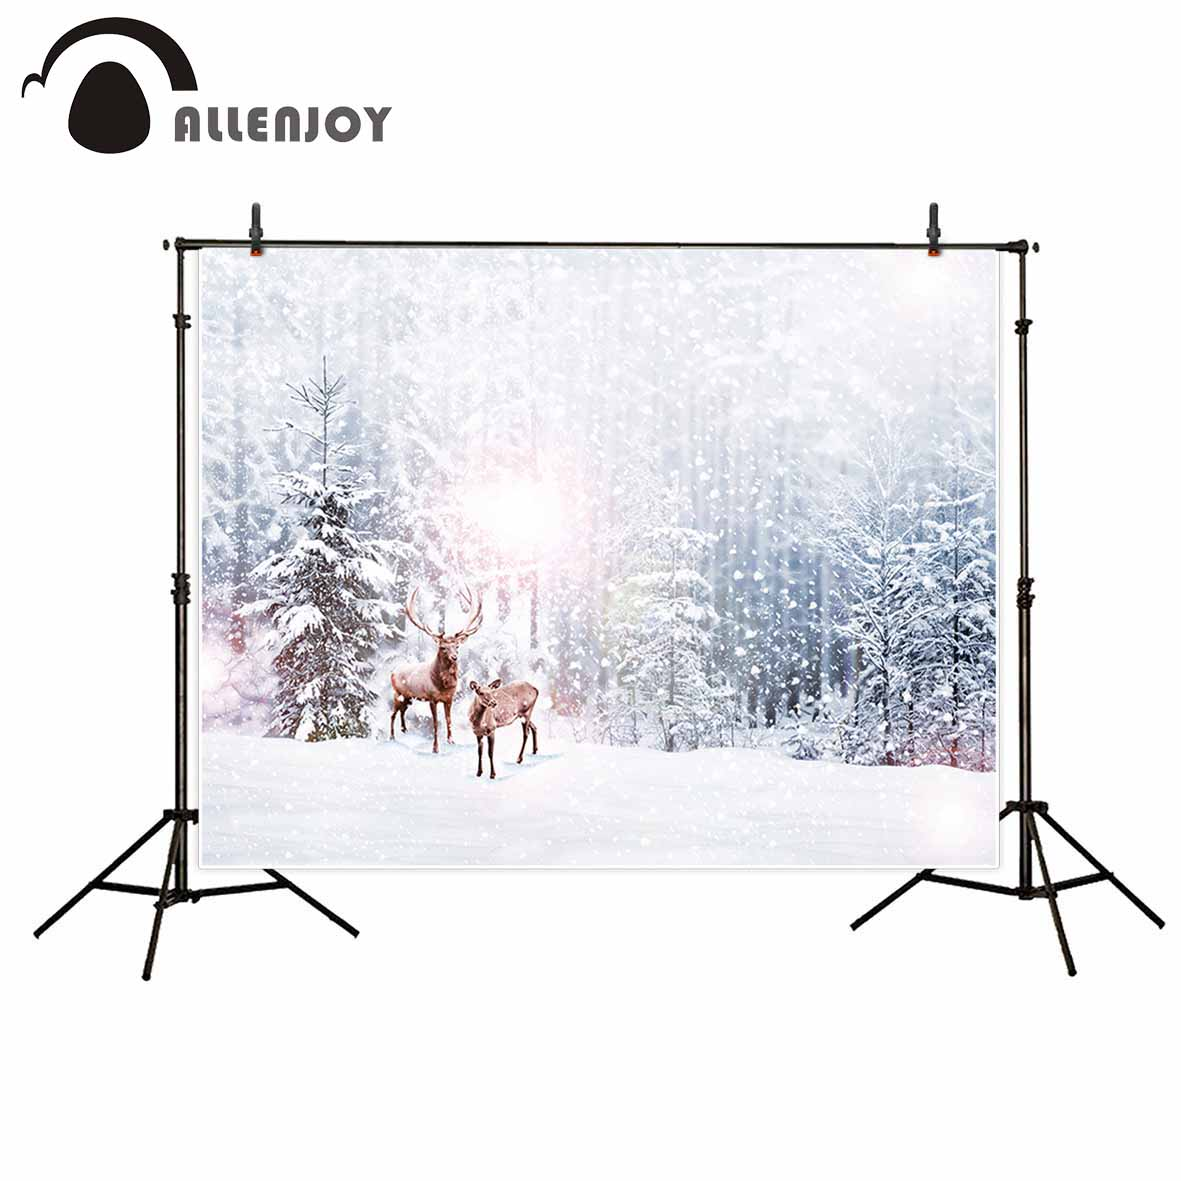 Allenjoy Winter background forest pine elk snow photography backdrops christmas decorations new backdrops photo studio джинсы diesel р 31 34